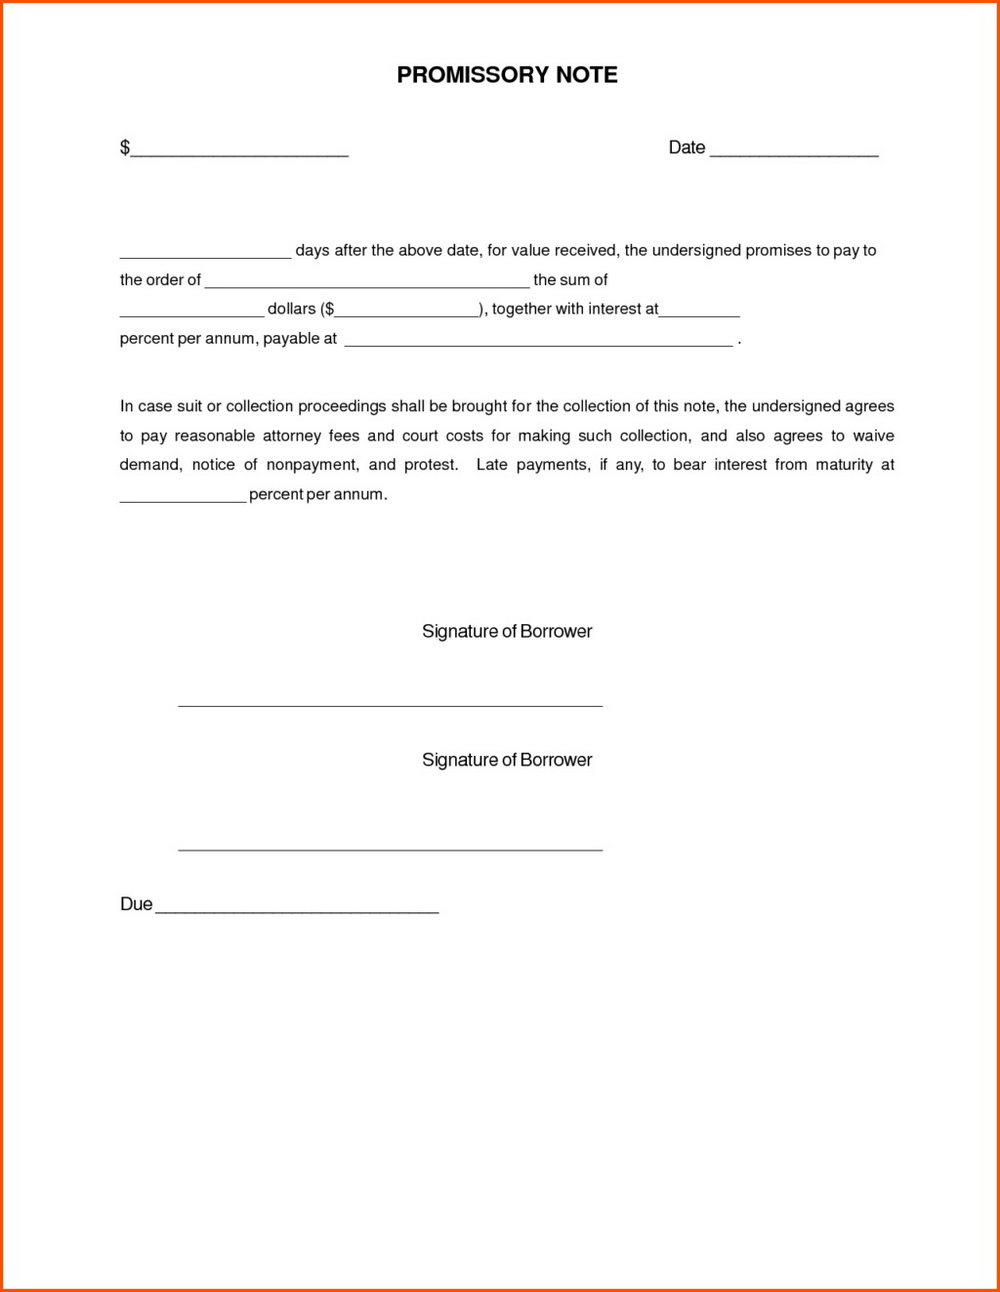 Promissory Note Format Philippines